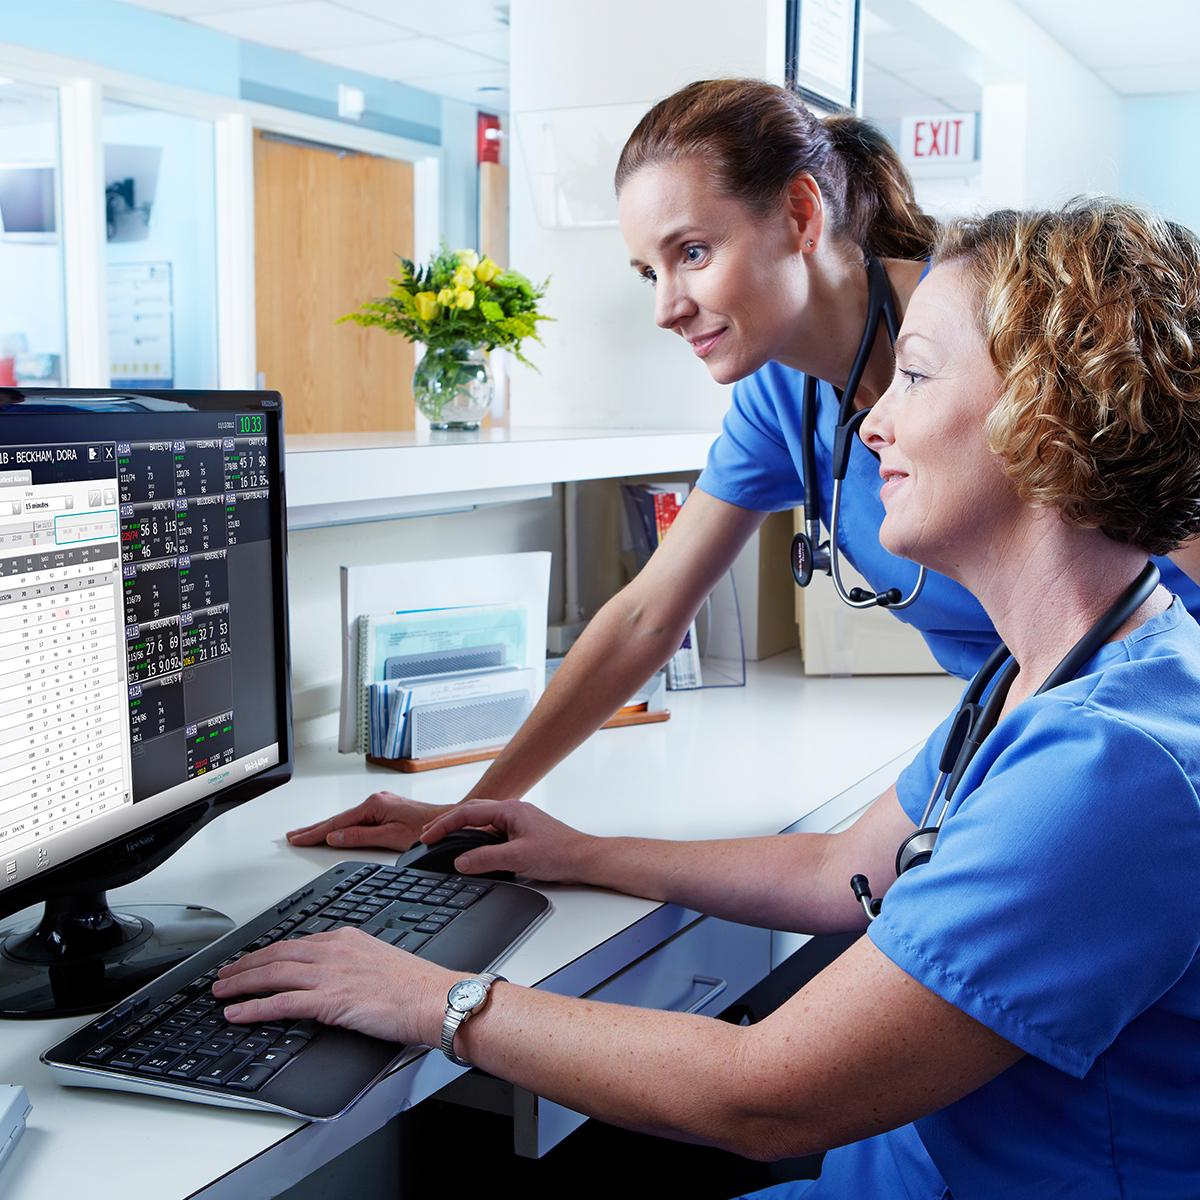 Two nurses looking at a desktop computer screen at a nurse's station reviewing patient statuses from the Connex Central Station software